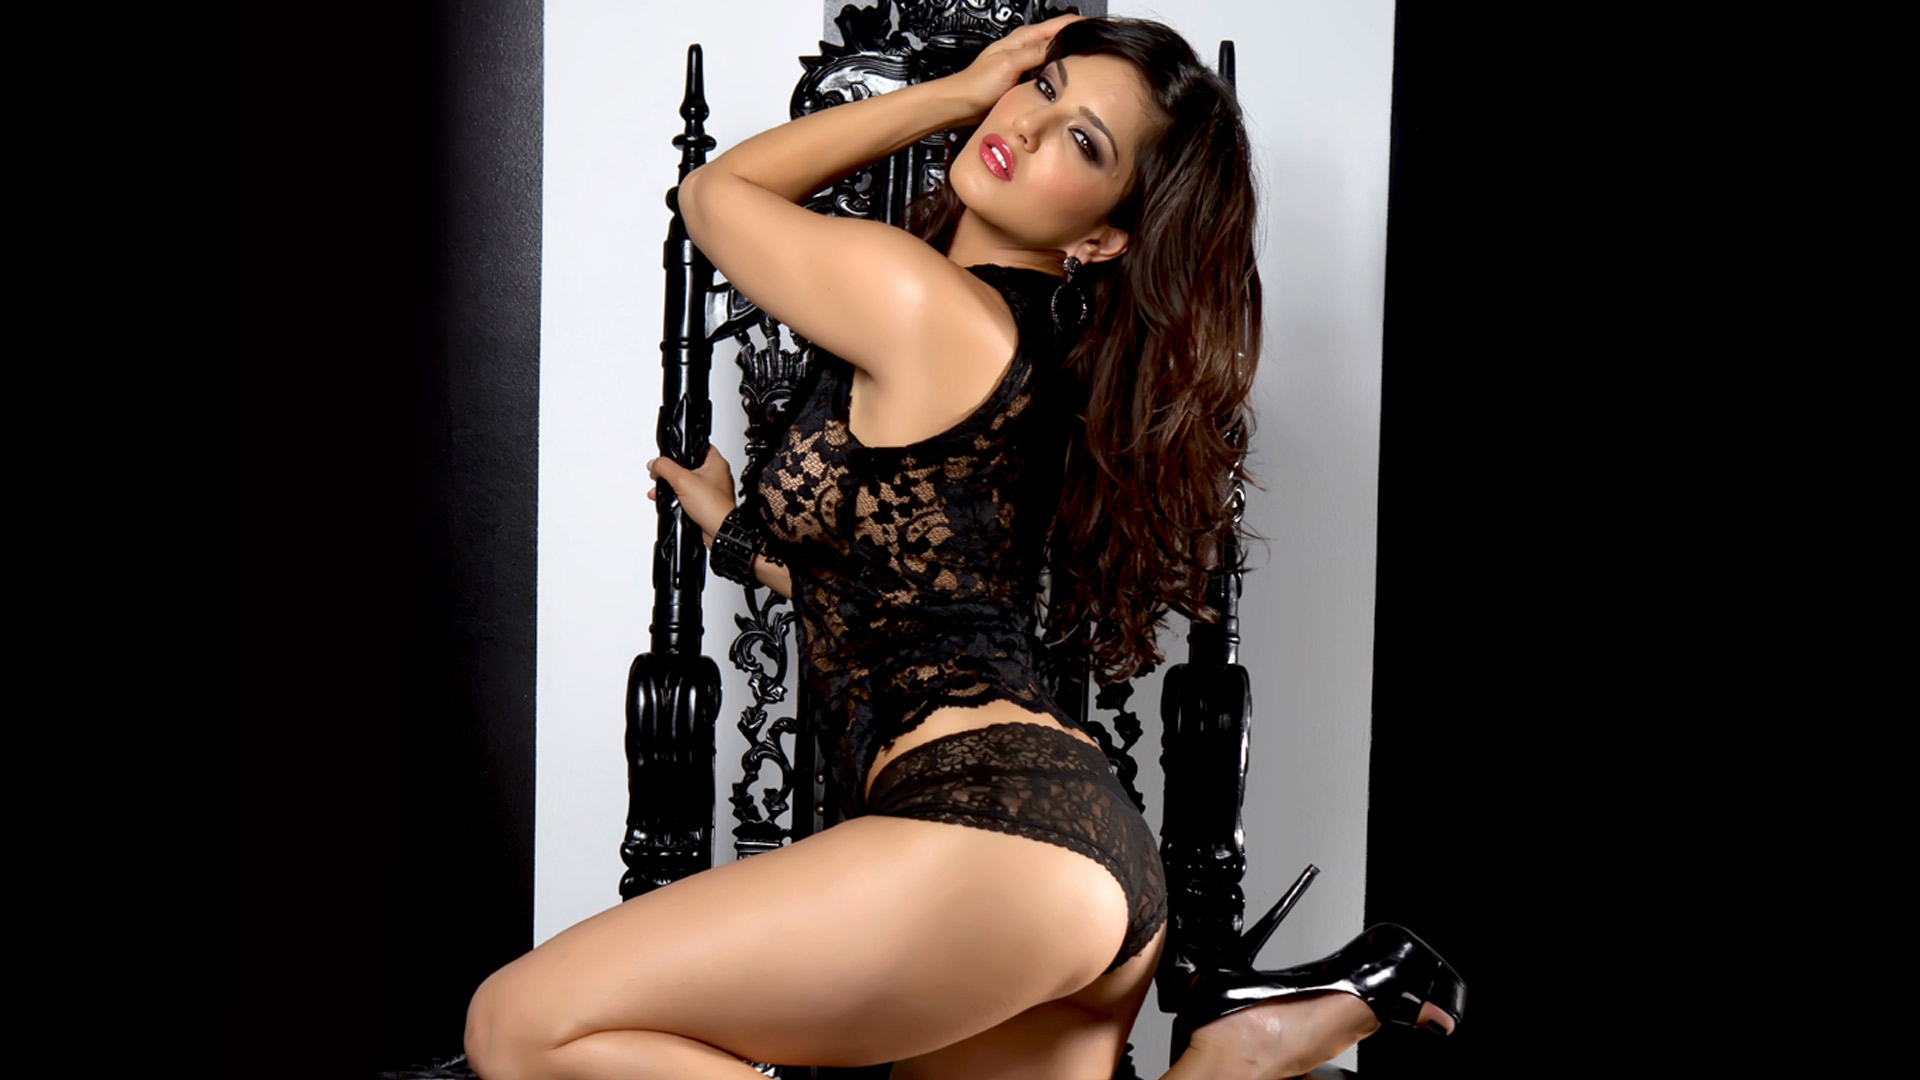 sunny leone new lingerie wallpapers - facebook cover - popopics